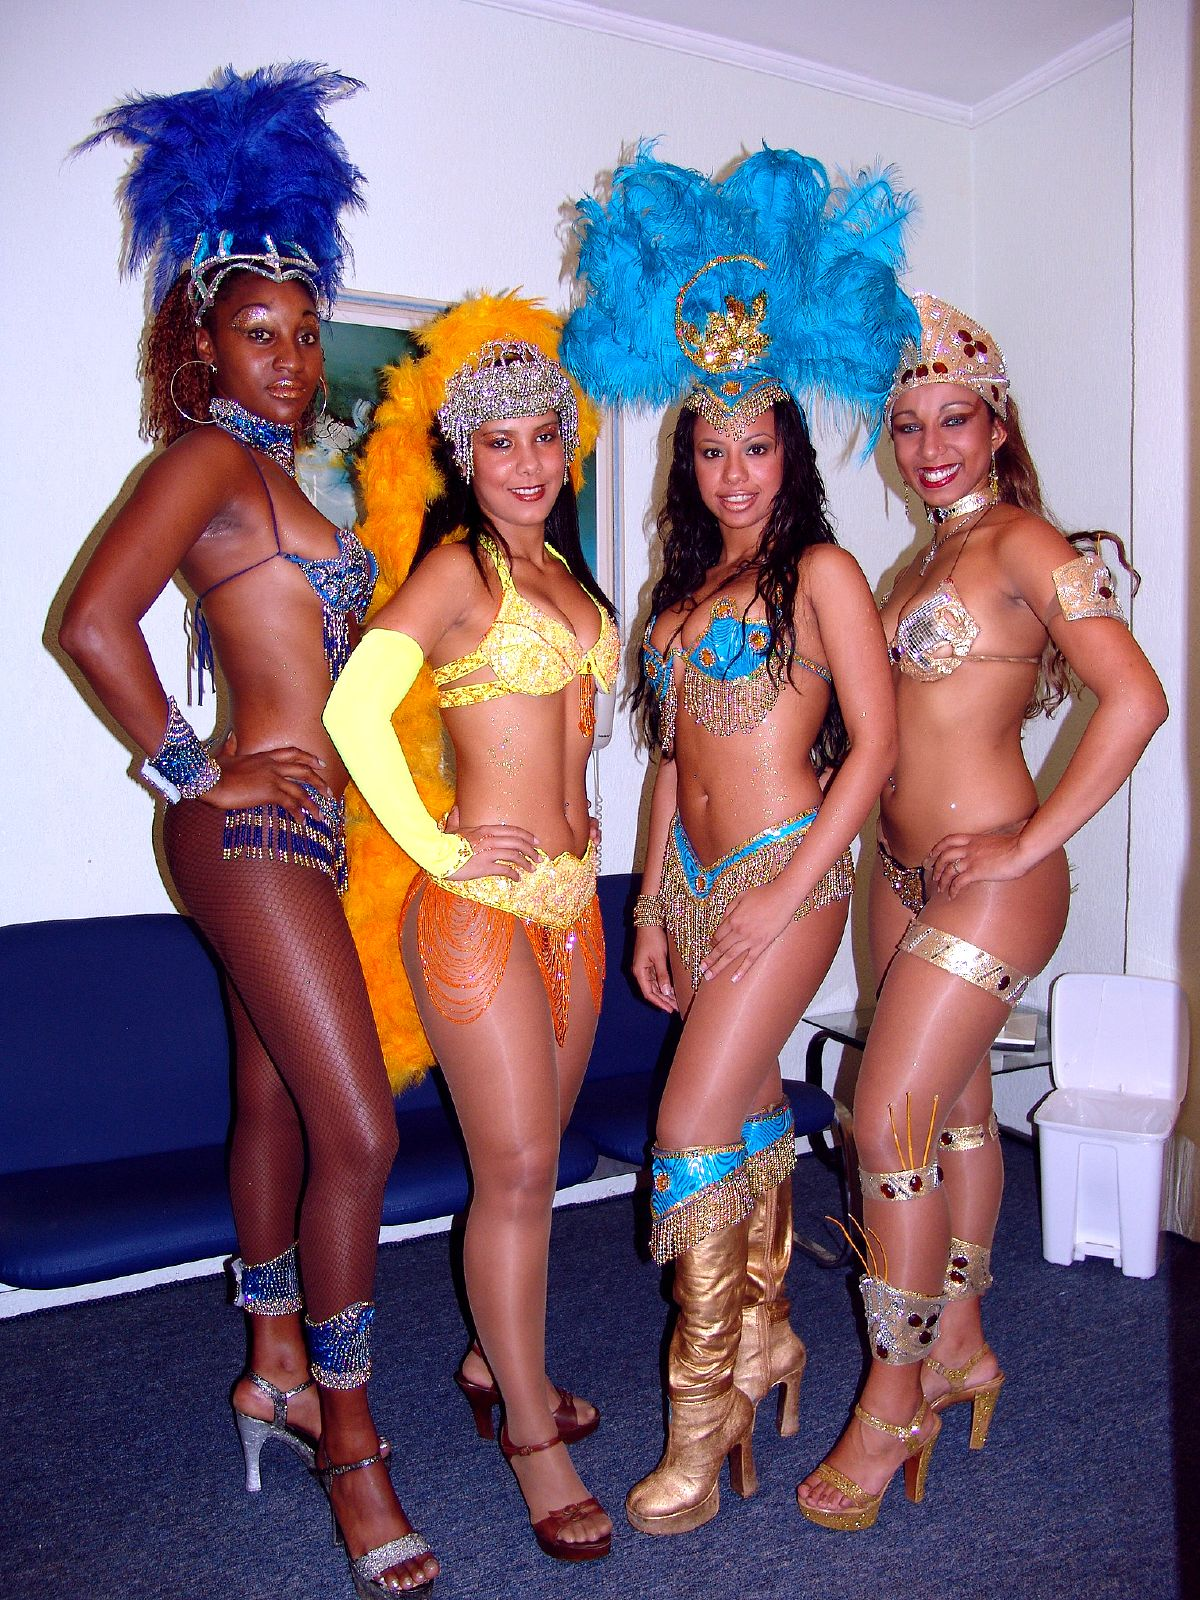 https://upload.wikimedia.org/wikipedia/commons/4/43/Criol%C3%A9_Show_-_Samba_dancers.jpg